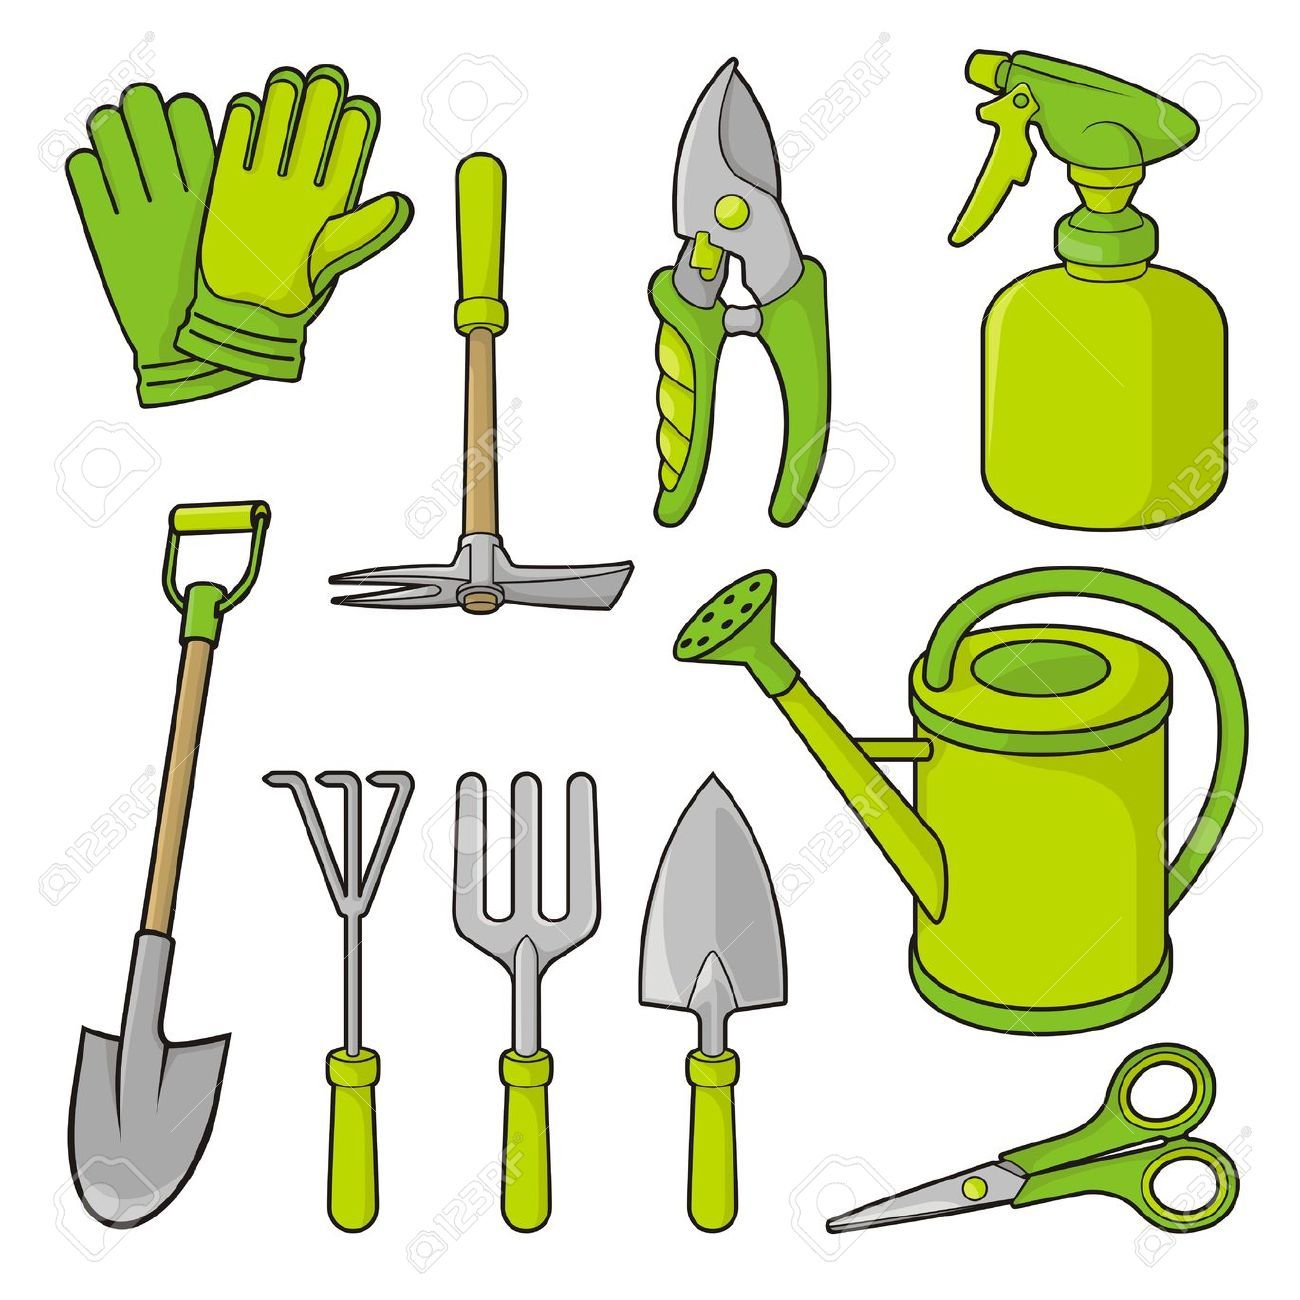 Gardening tools clip art free you can find out more for Gardening tools list with pictures